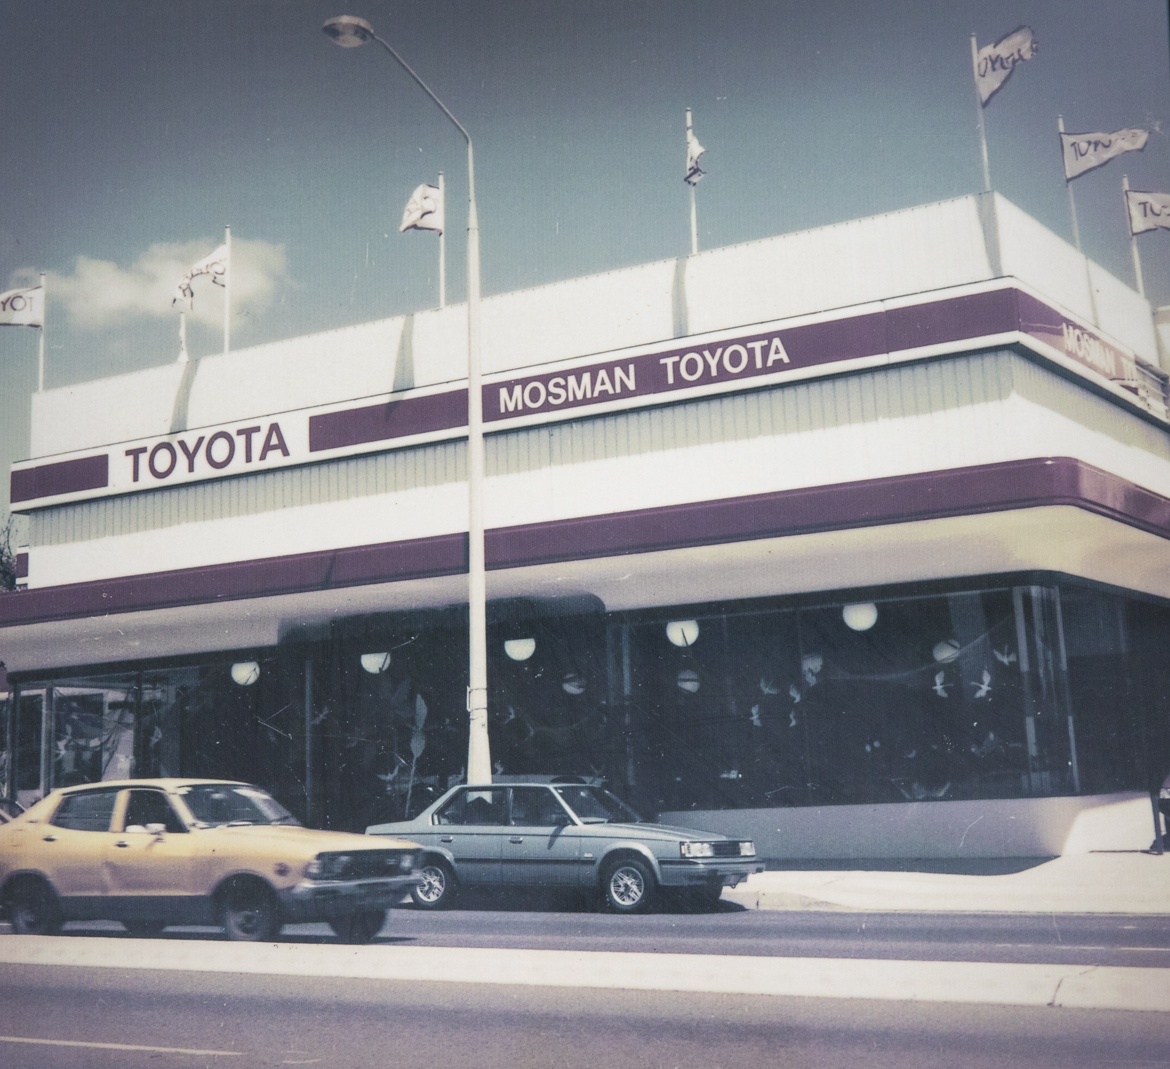 Mosman Toyota has been part of our local fabric for decades.